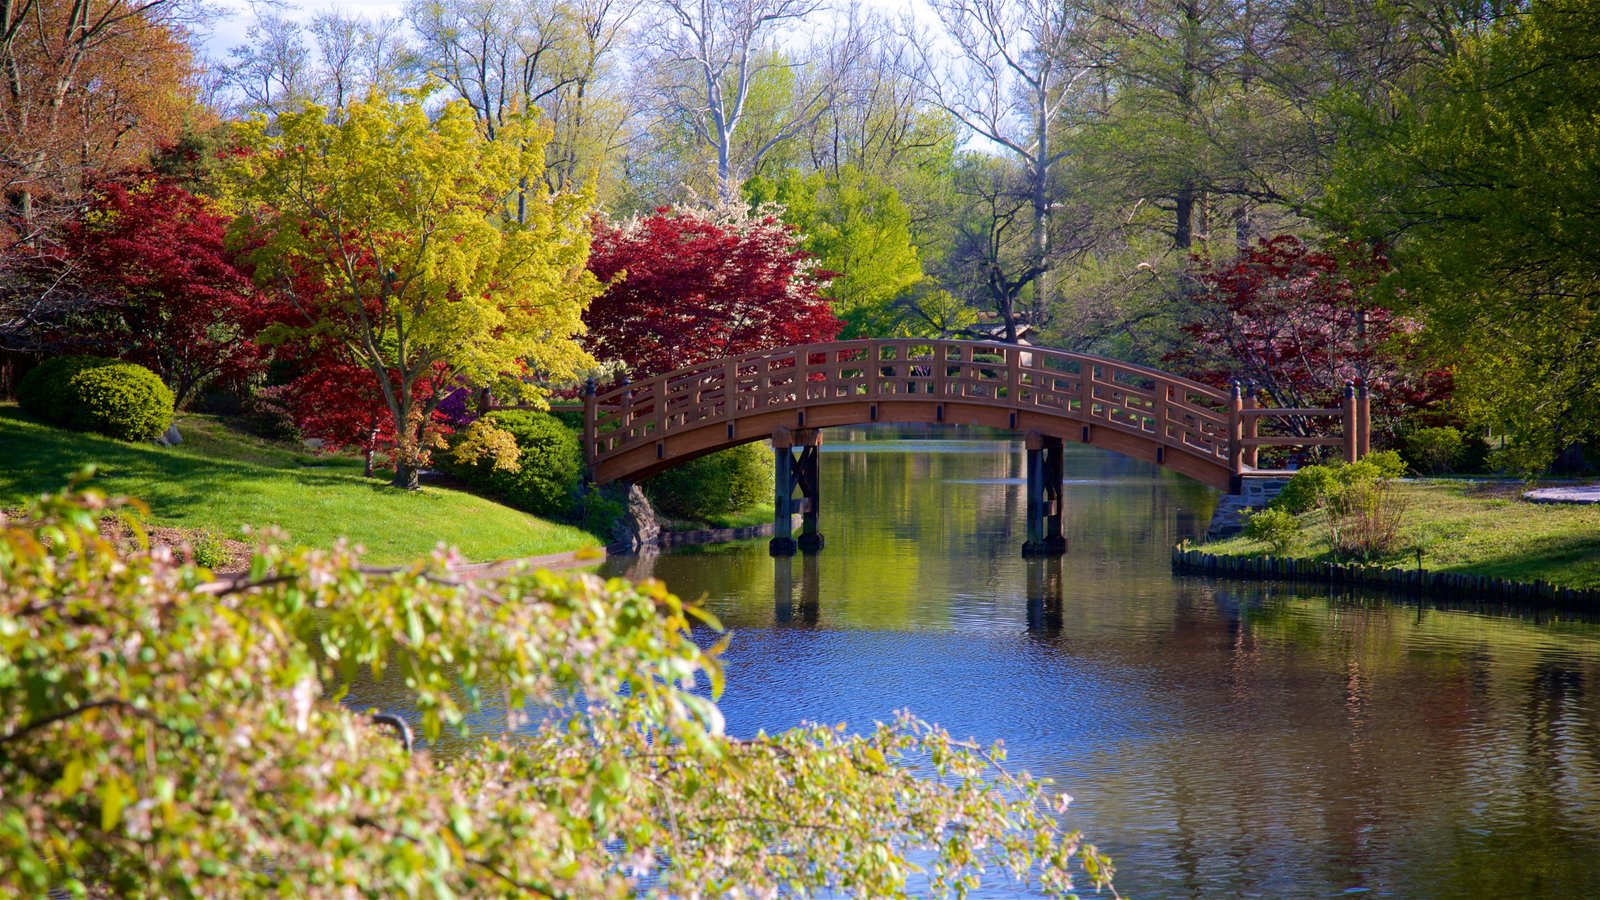 Bon Missouri Botanical Gardens And Arboretum Which Includes A River Or Creek, A  Bridge And A